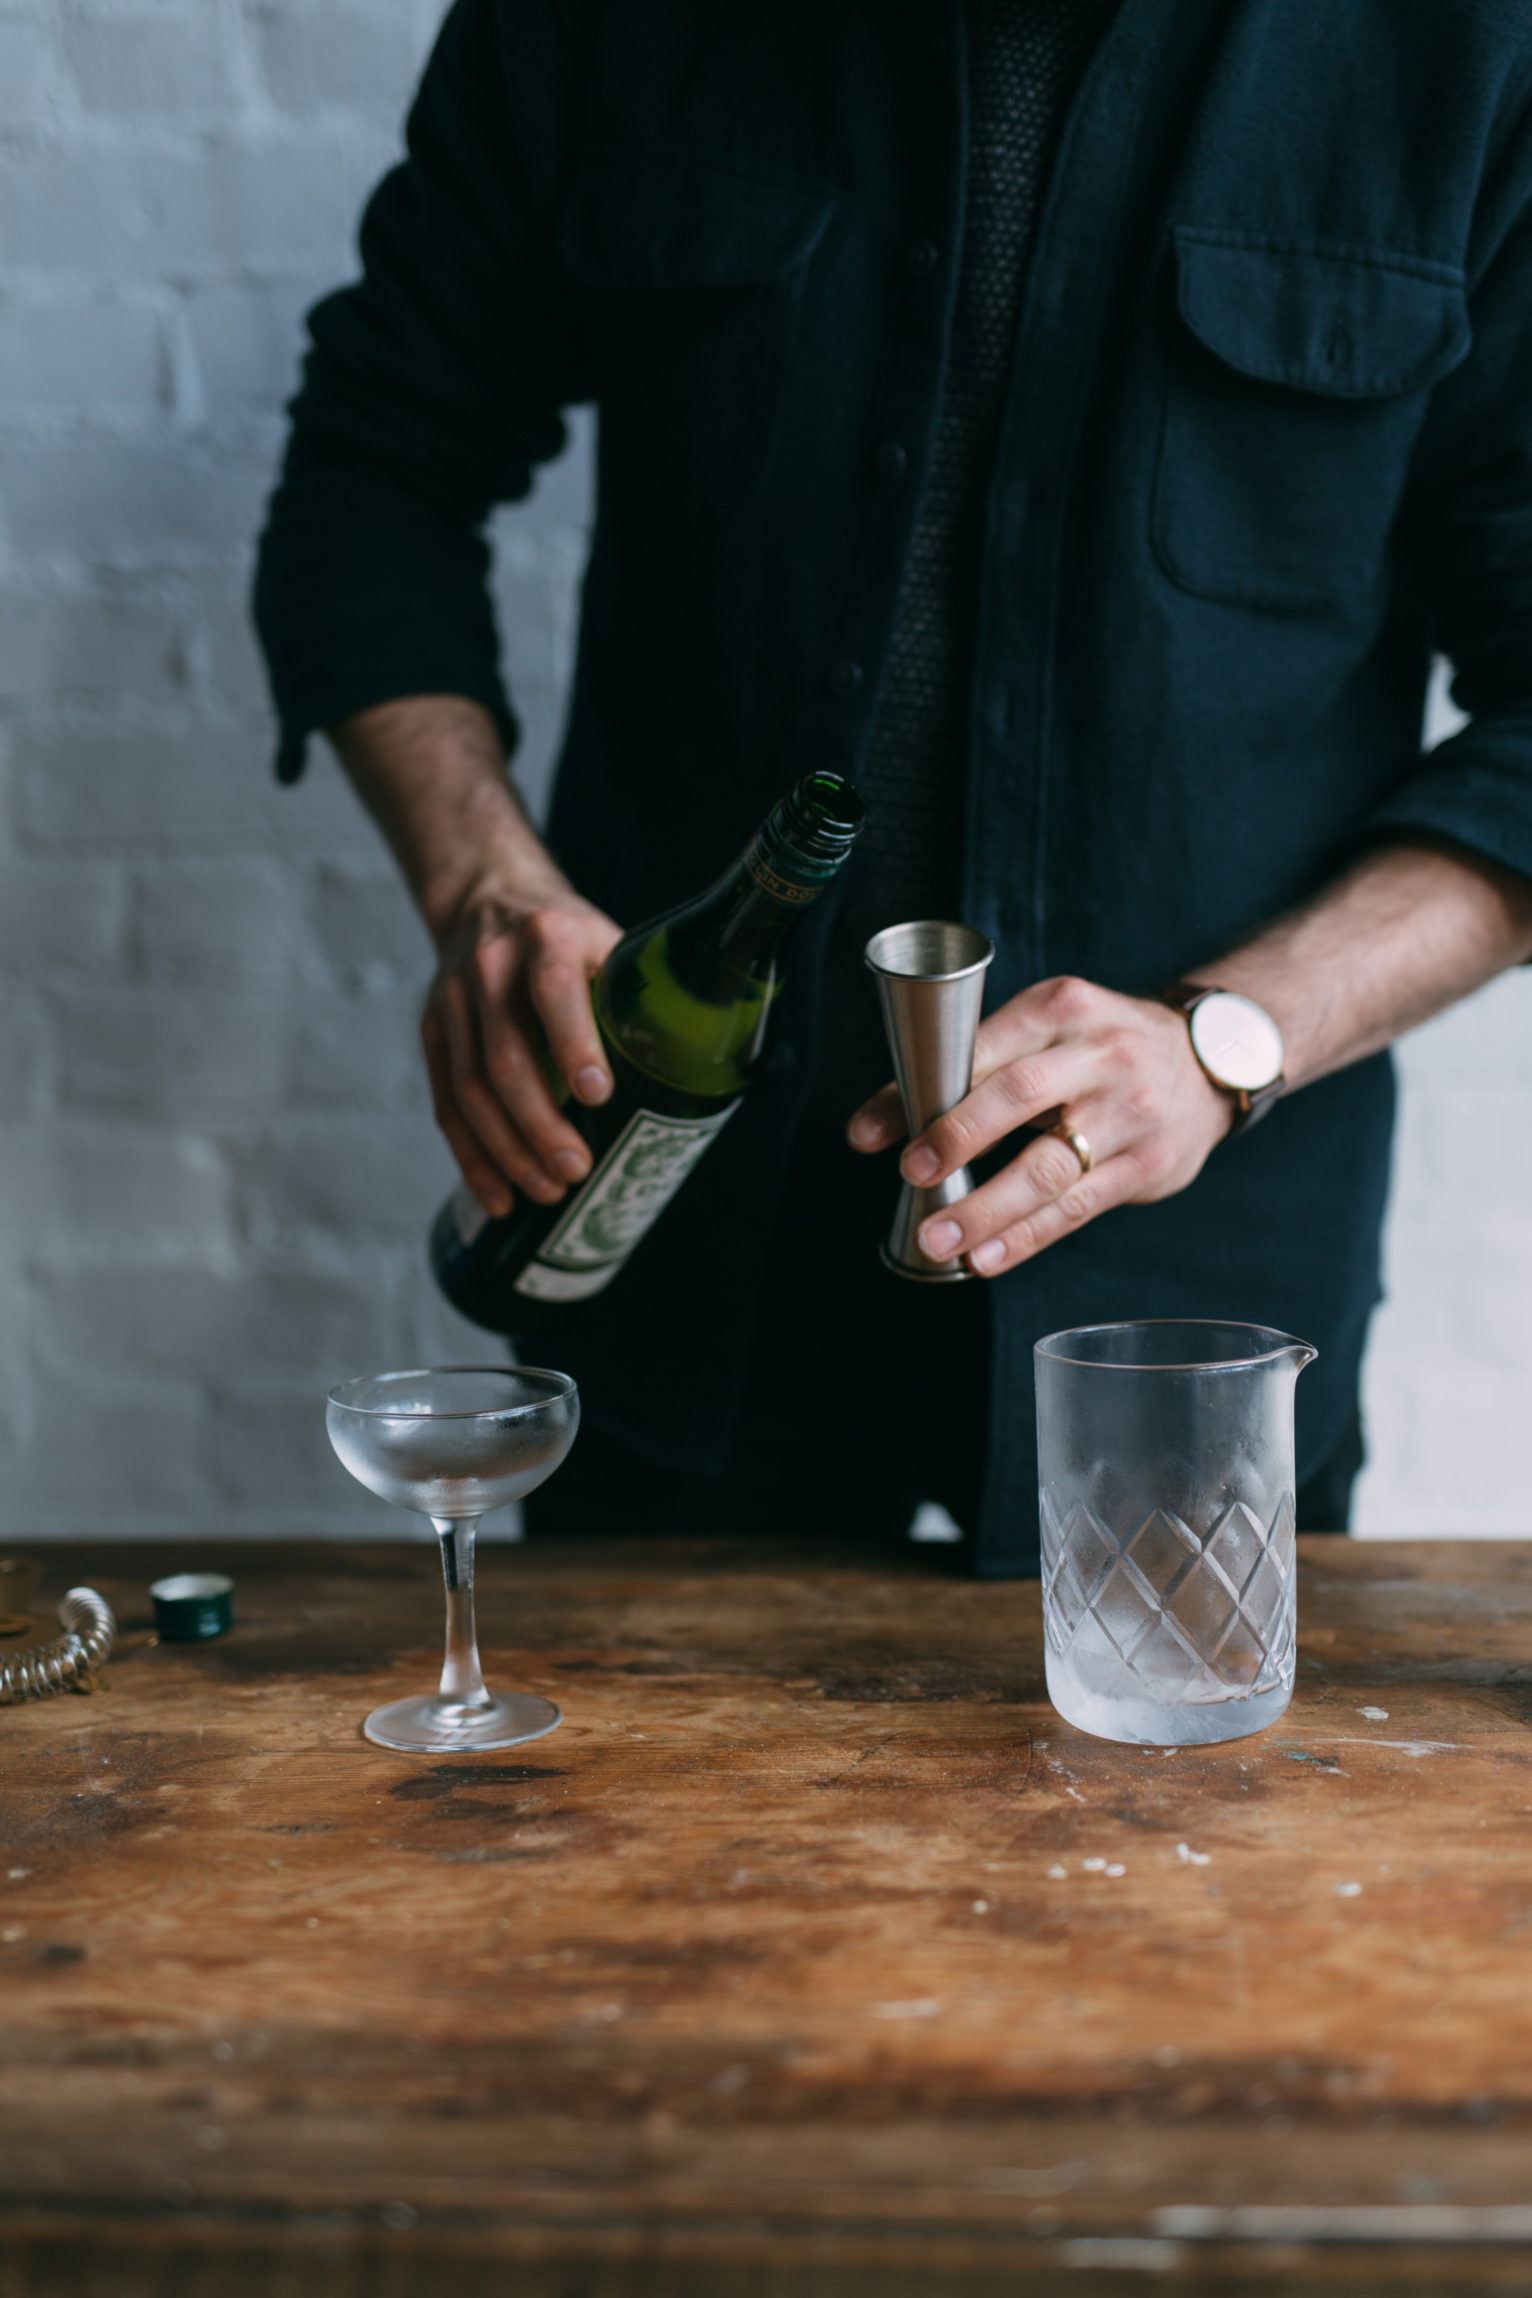 Pouring vermouth